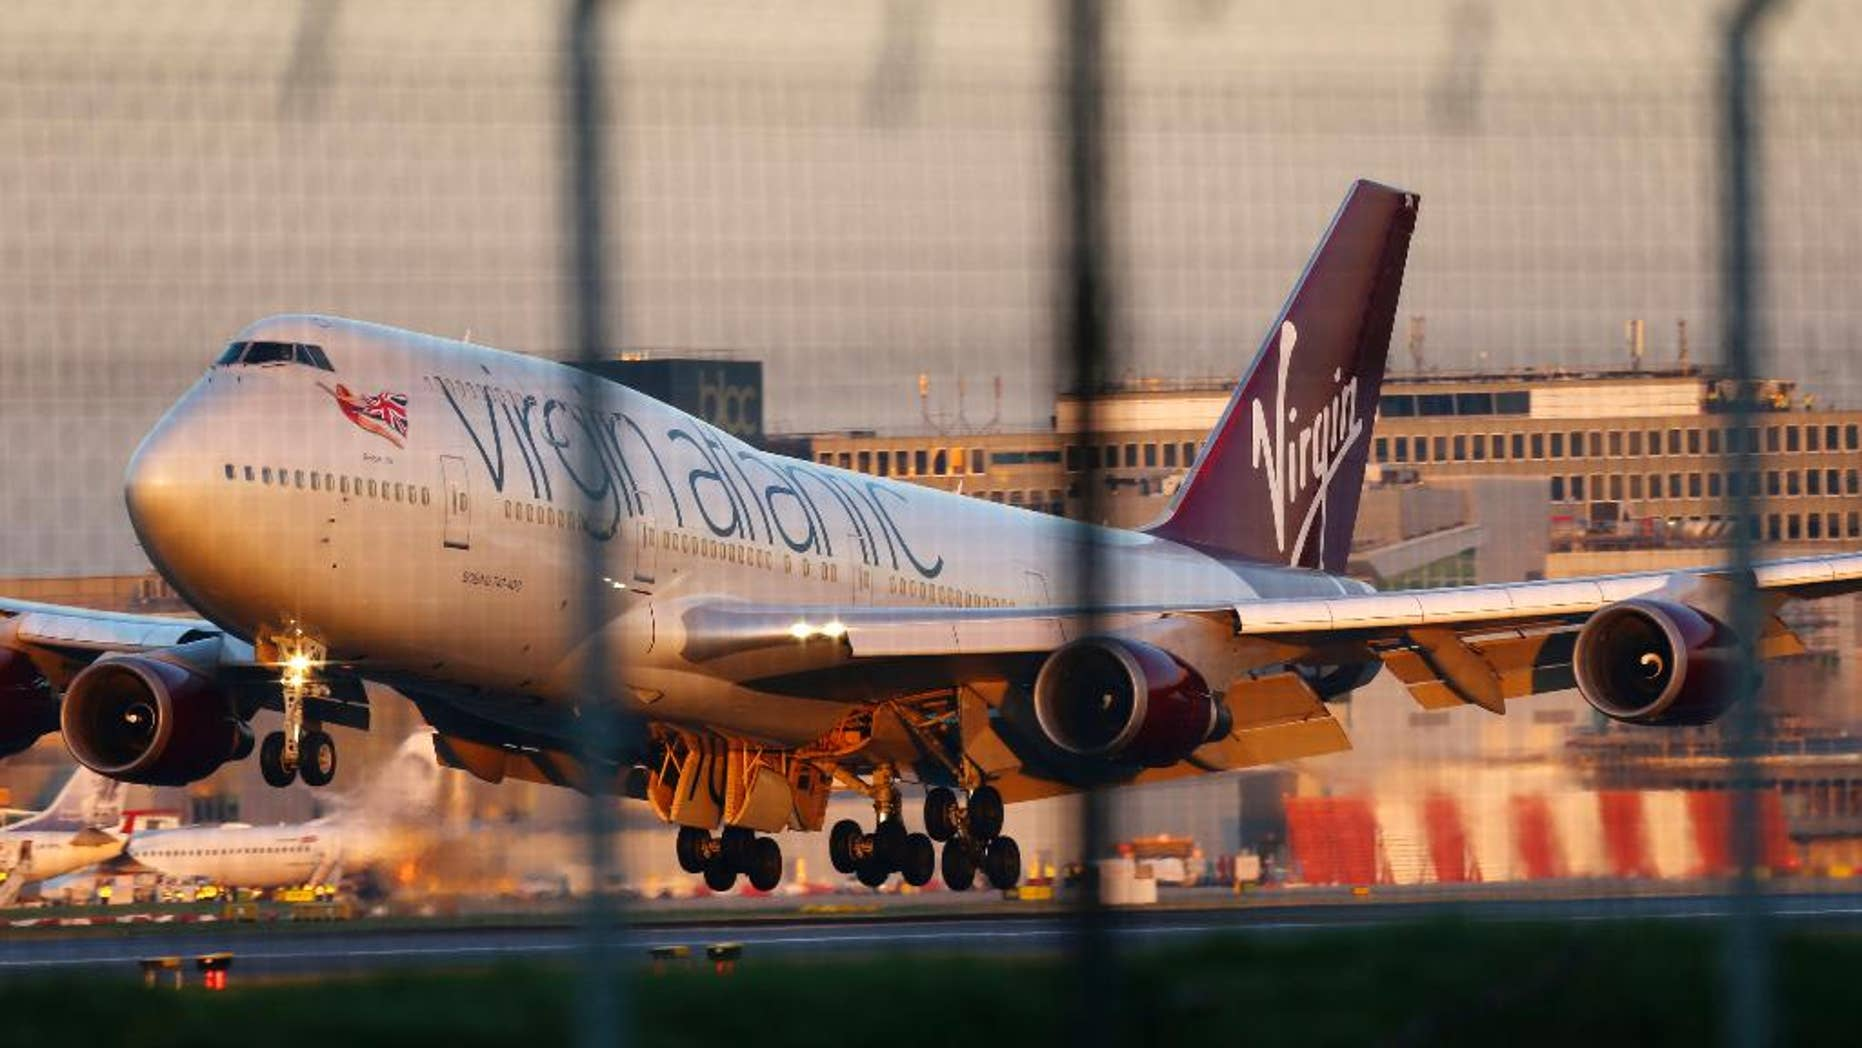 """A Virgin Atlantic Boeing passenger jet performs an emergency landing at Gatwick Airport after developing a landing gear fault, London, Monday, Dec. 29 2014. The airline says the plane undertook """"a non-standard landing procedure"""" because of """"a technical issue with one of the landing gears."""" (AP Photo/PA, Gareth Fuller) UNITED KINGDOM OUT, NO SALES, NO ARCHIVE"""